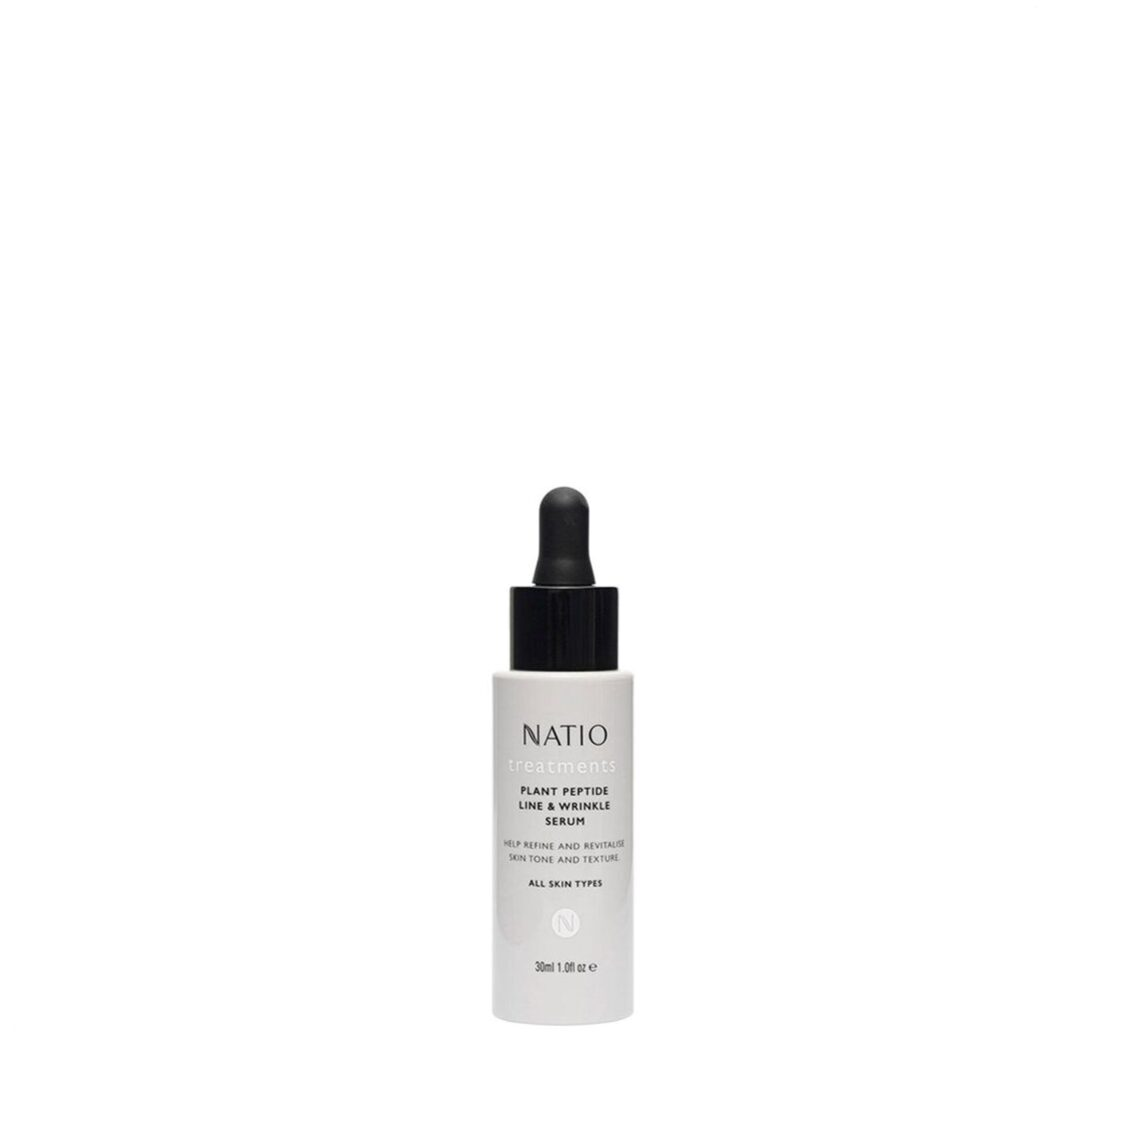 Natio Treatments Plant Peptide Line  Wrinkle Serum 30ml